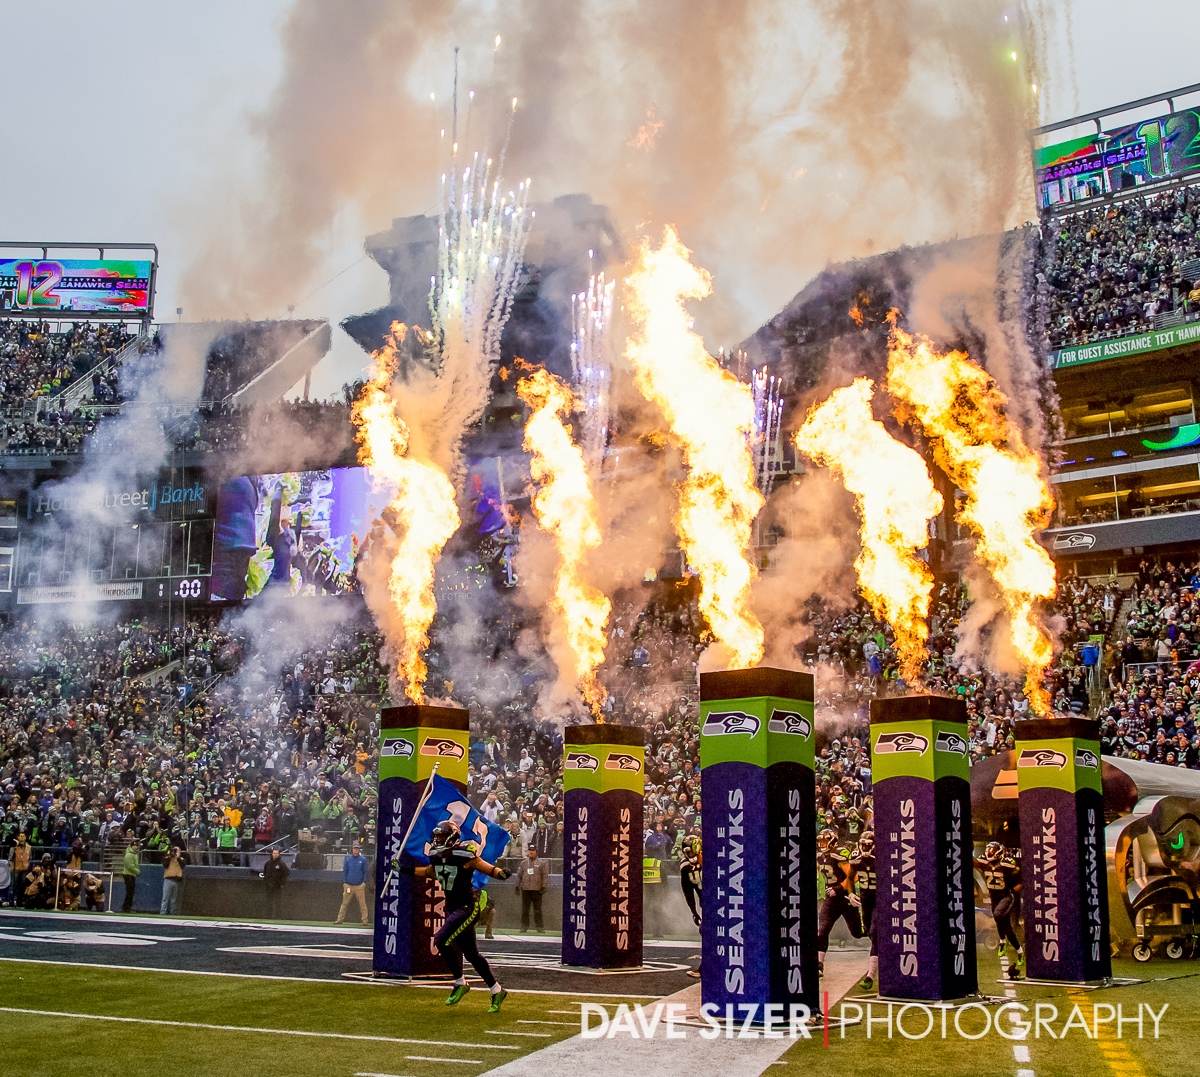 The Seahawks take the field.